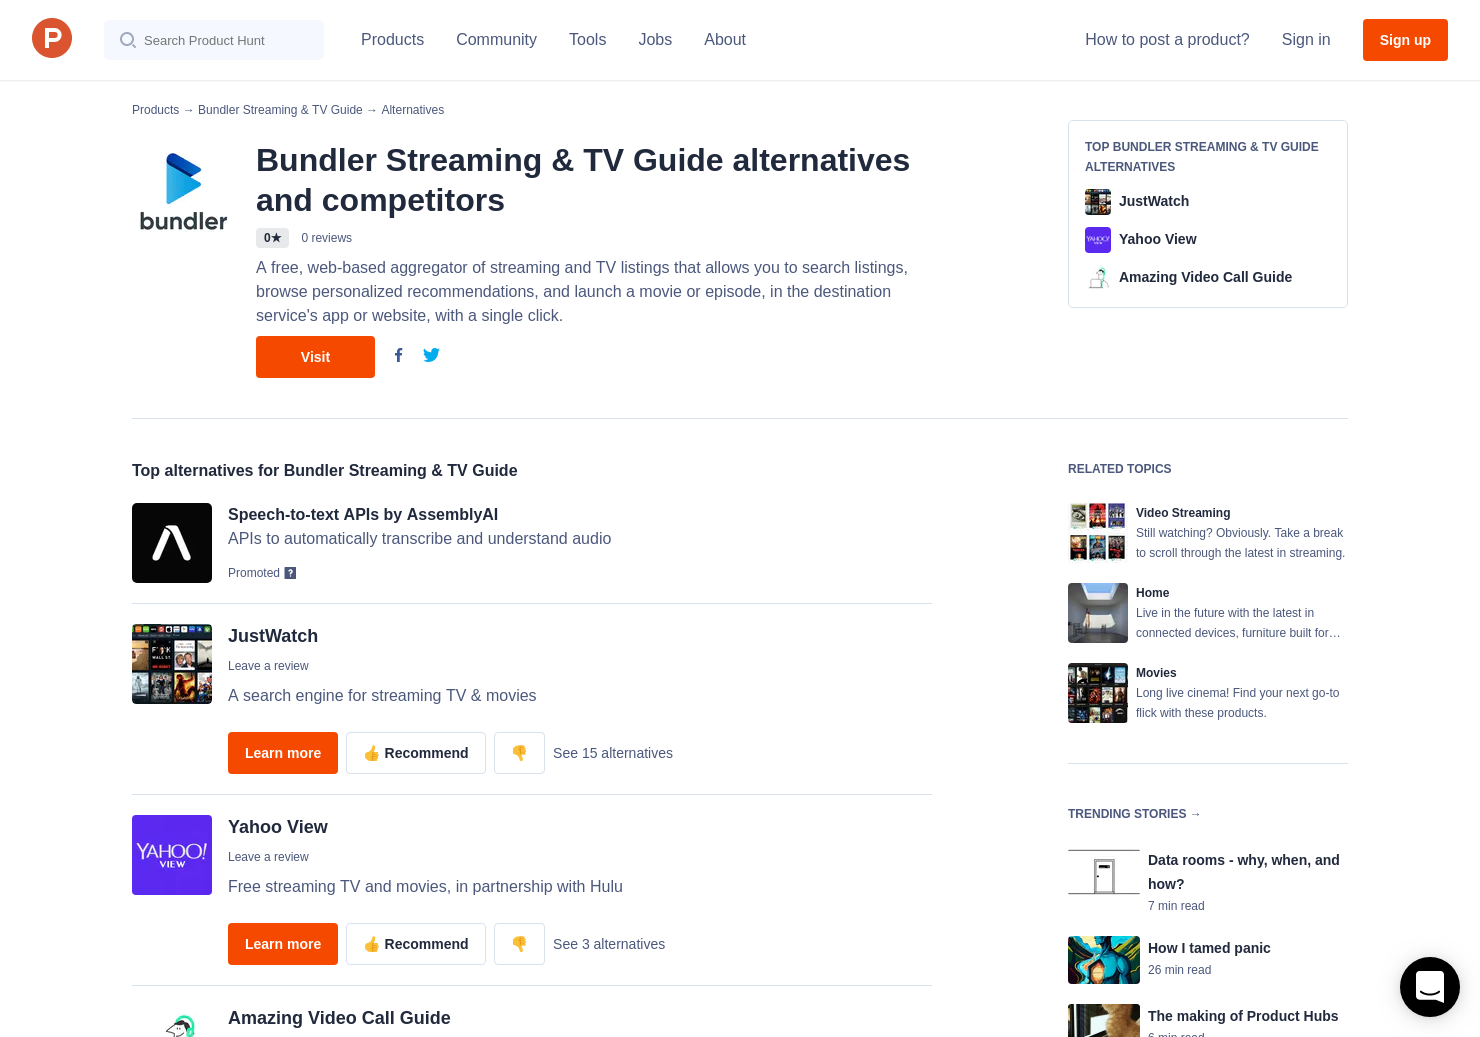 8 Alternatives to Bundler Streaming & TV Guide